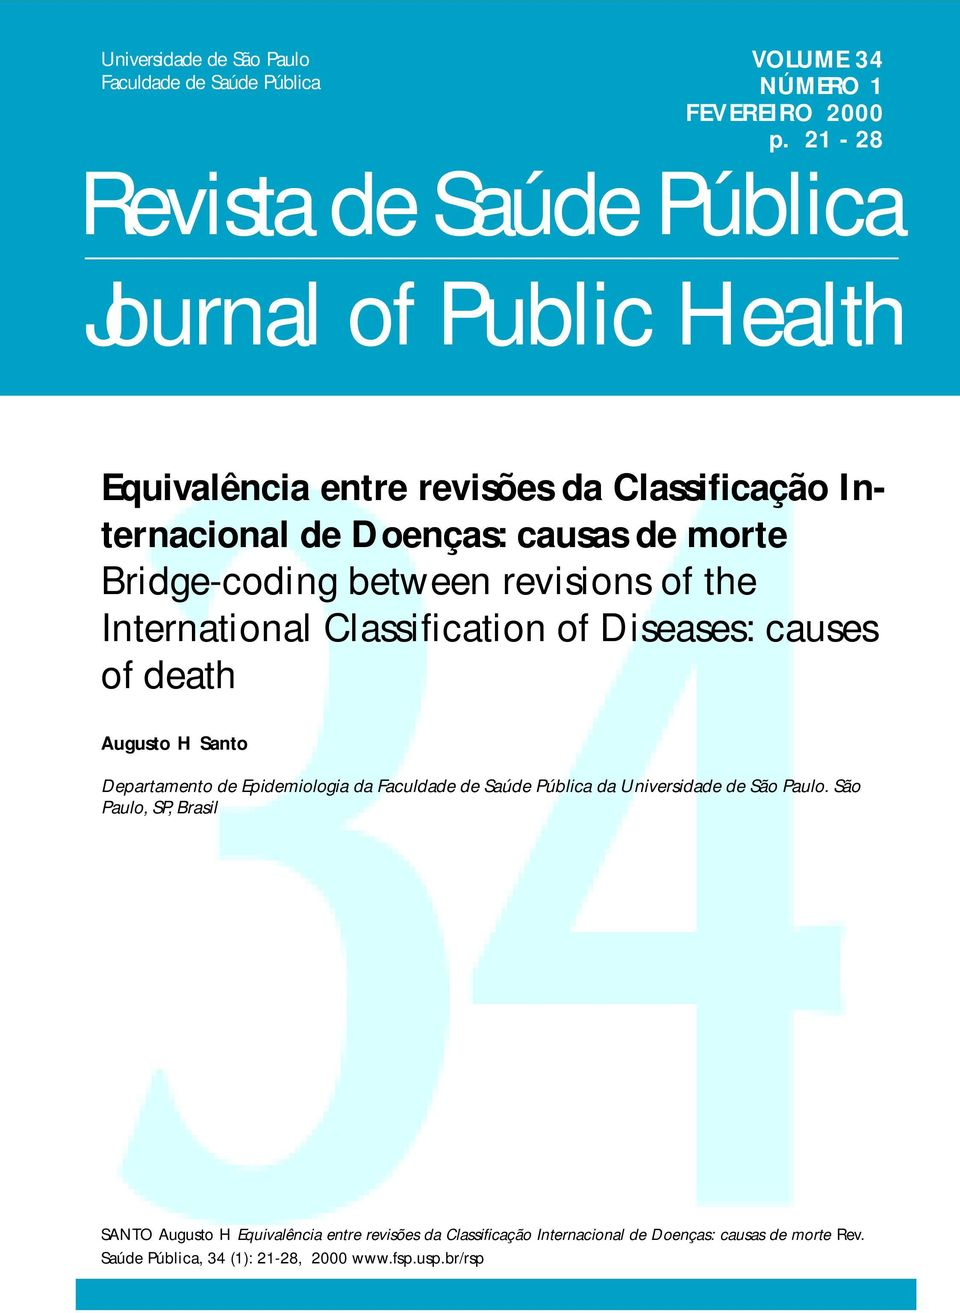 Bridge-coding between revisions of the International Classification of Diseases: causes of death Augusto H Santo Departamento de Epidemiologia da